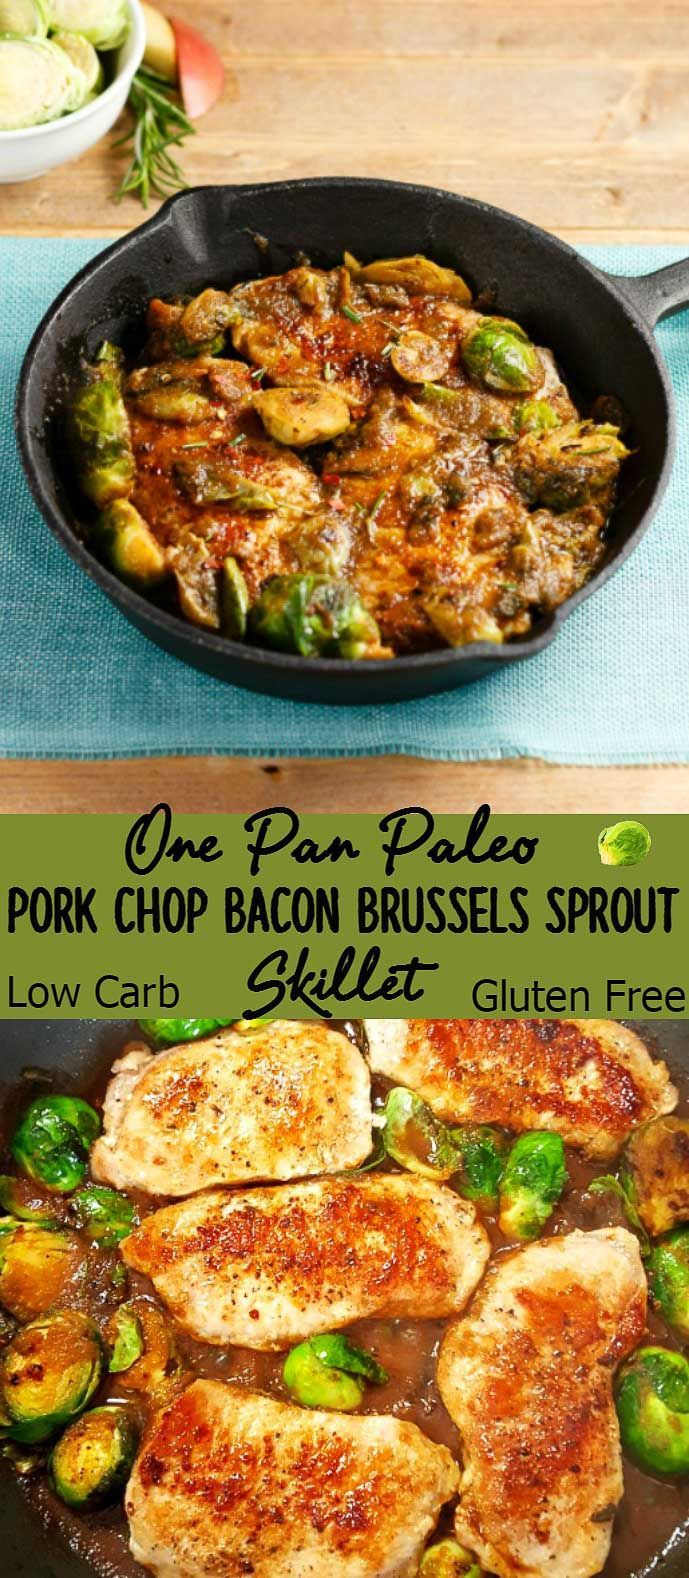 One Pan Pork Chop Bacon Brussels Sprout Skillet- Paleo, Low Carb, pork chops & Brussels sprouts & bacon in a sage apple balsamic glaze